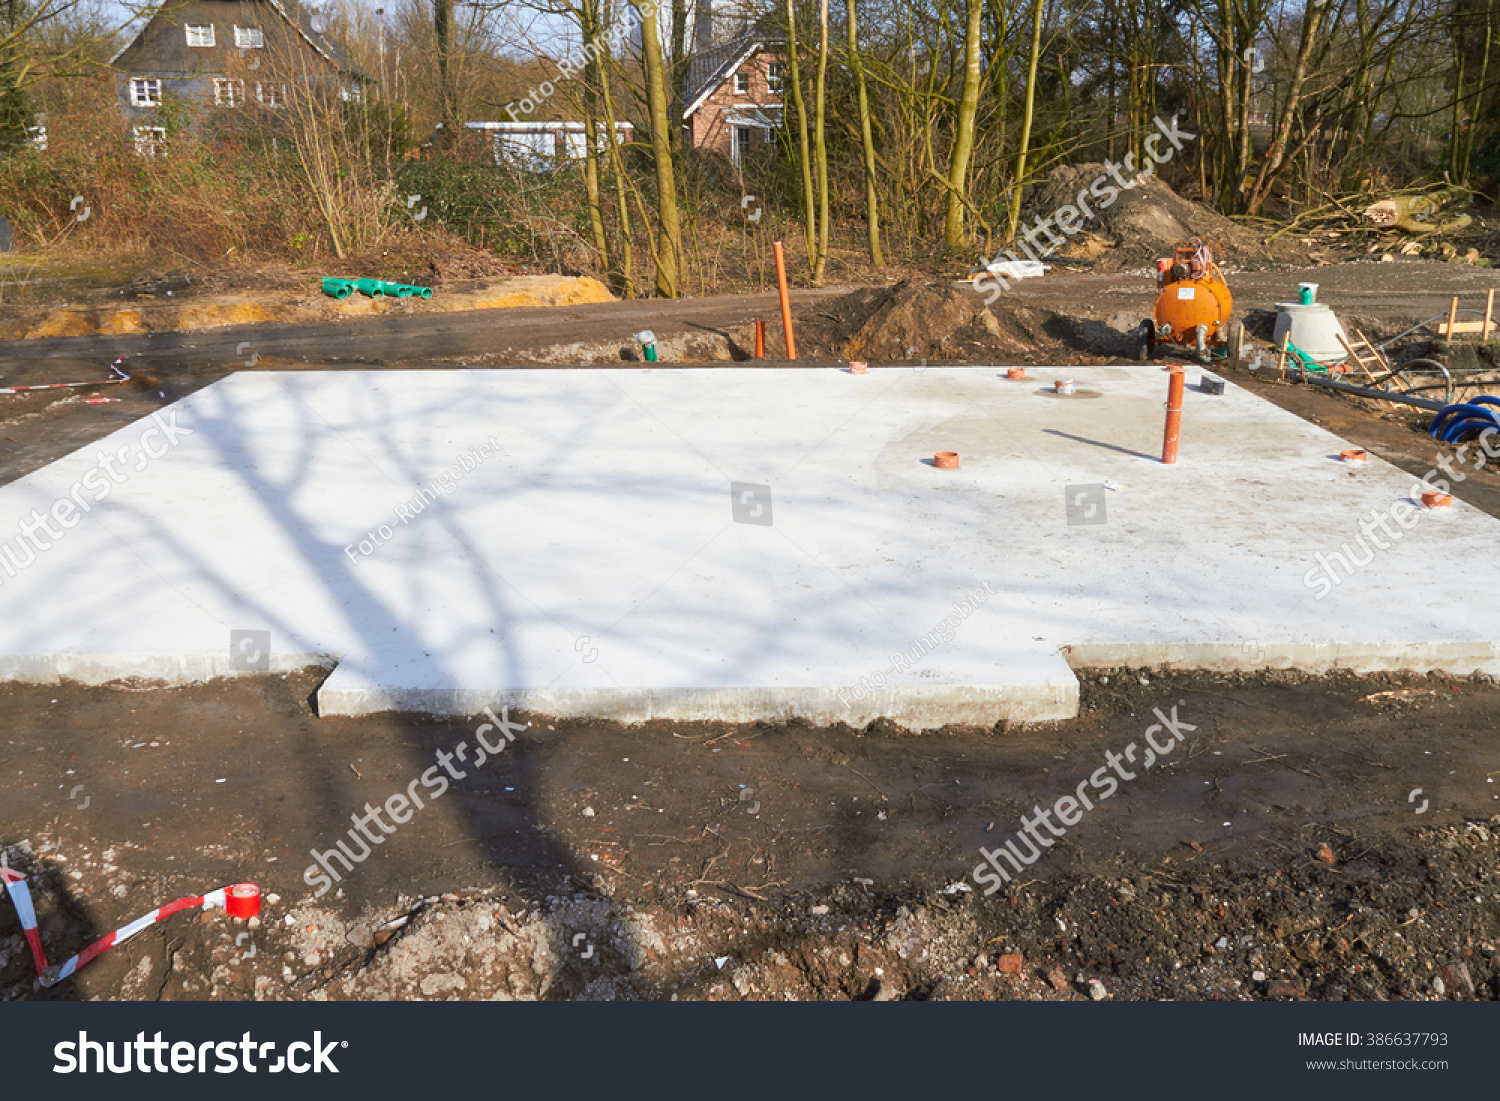 Base Plate Made Of Concrete As The Foundation For The Construction Of A  Prefabricated House.